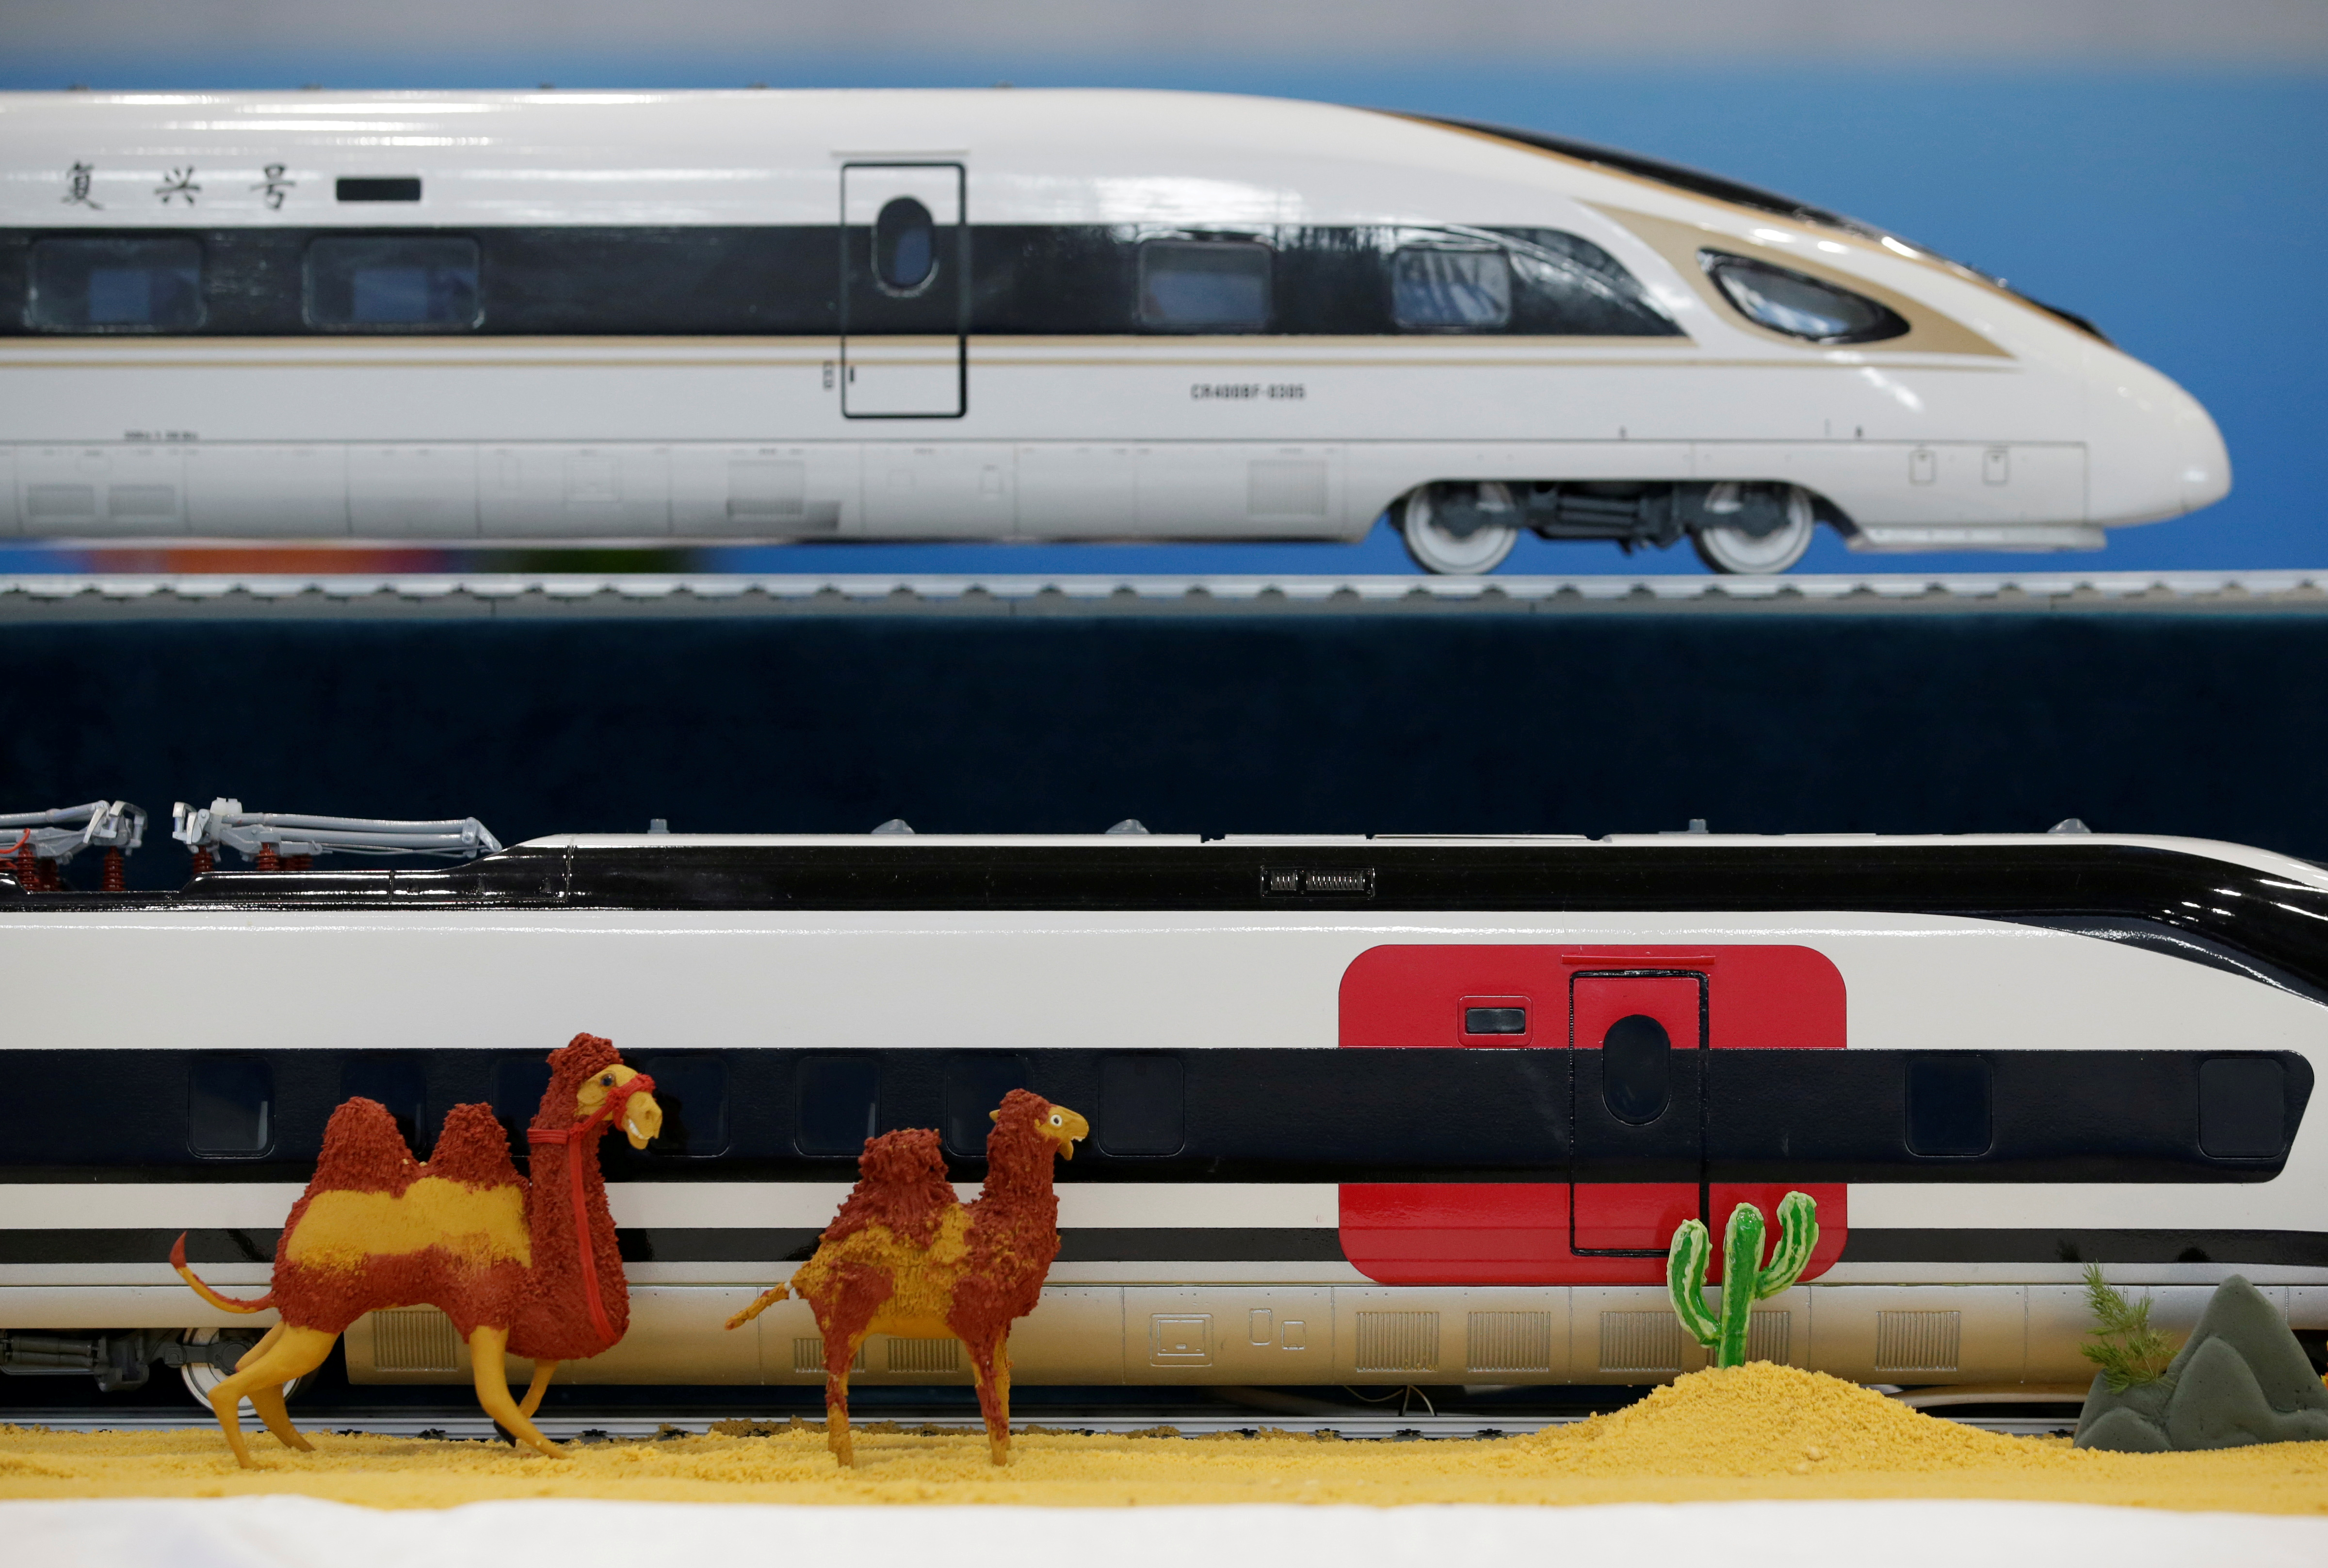 A replica of China Railway High-speed trains is seen at a media center for the second Belt and Road Forum, in Beijing, China, April 26, 2019. REUTERS/Jason Lee/File Photo